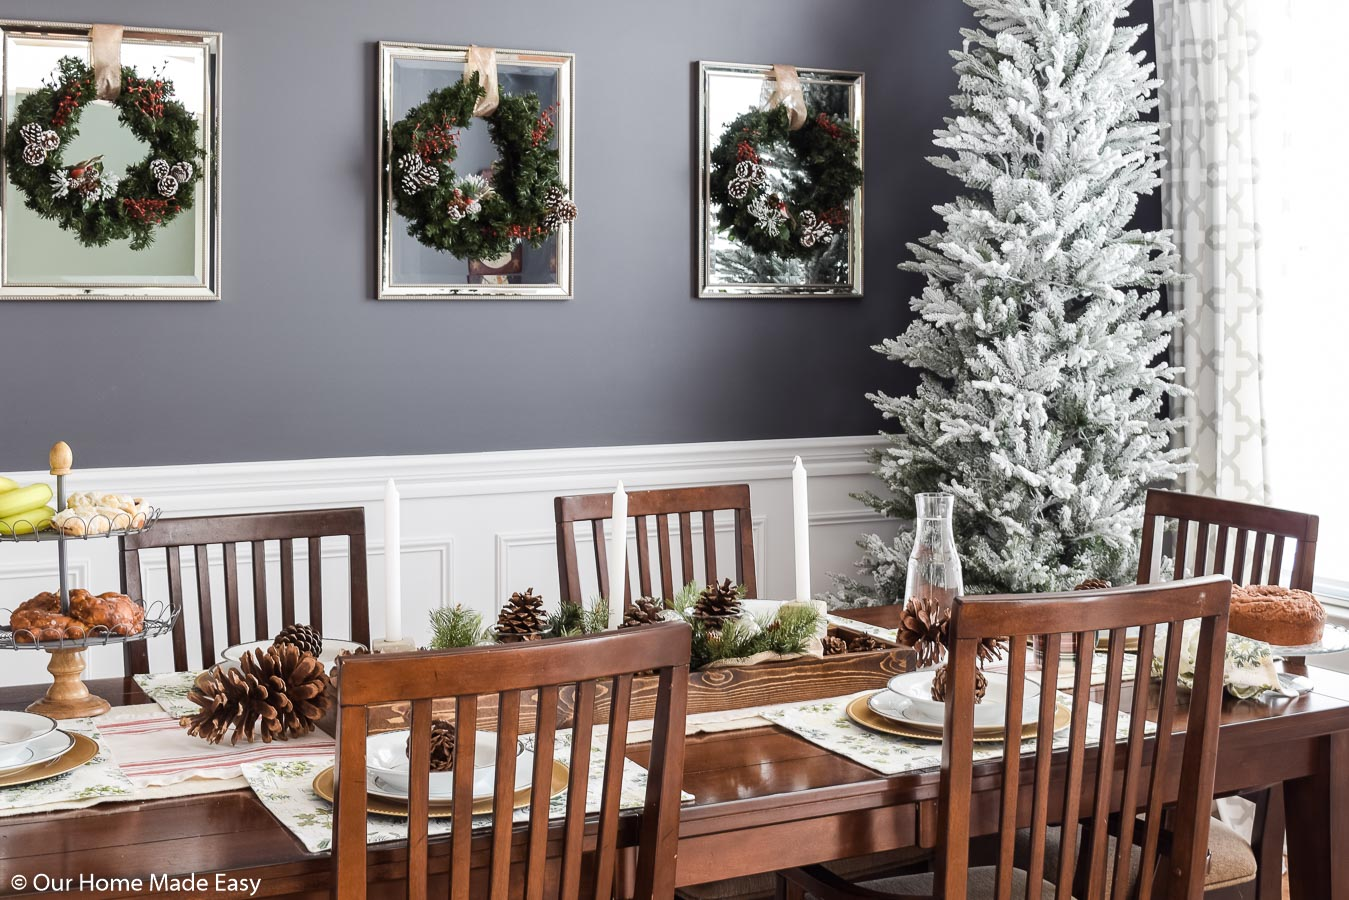 Our Christmas dining room is simple and bright, with a faux white-frosted Christmas tree, wreaths, and festive place settings